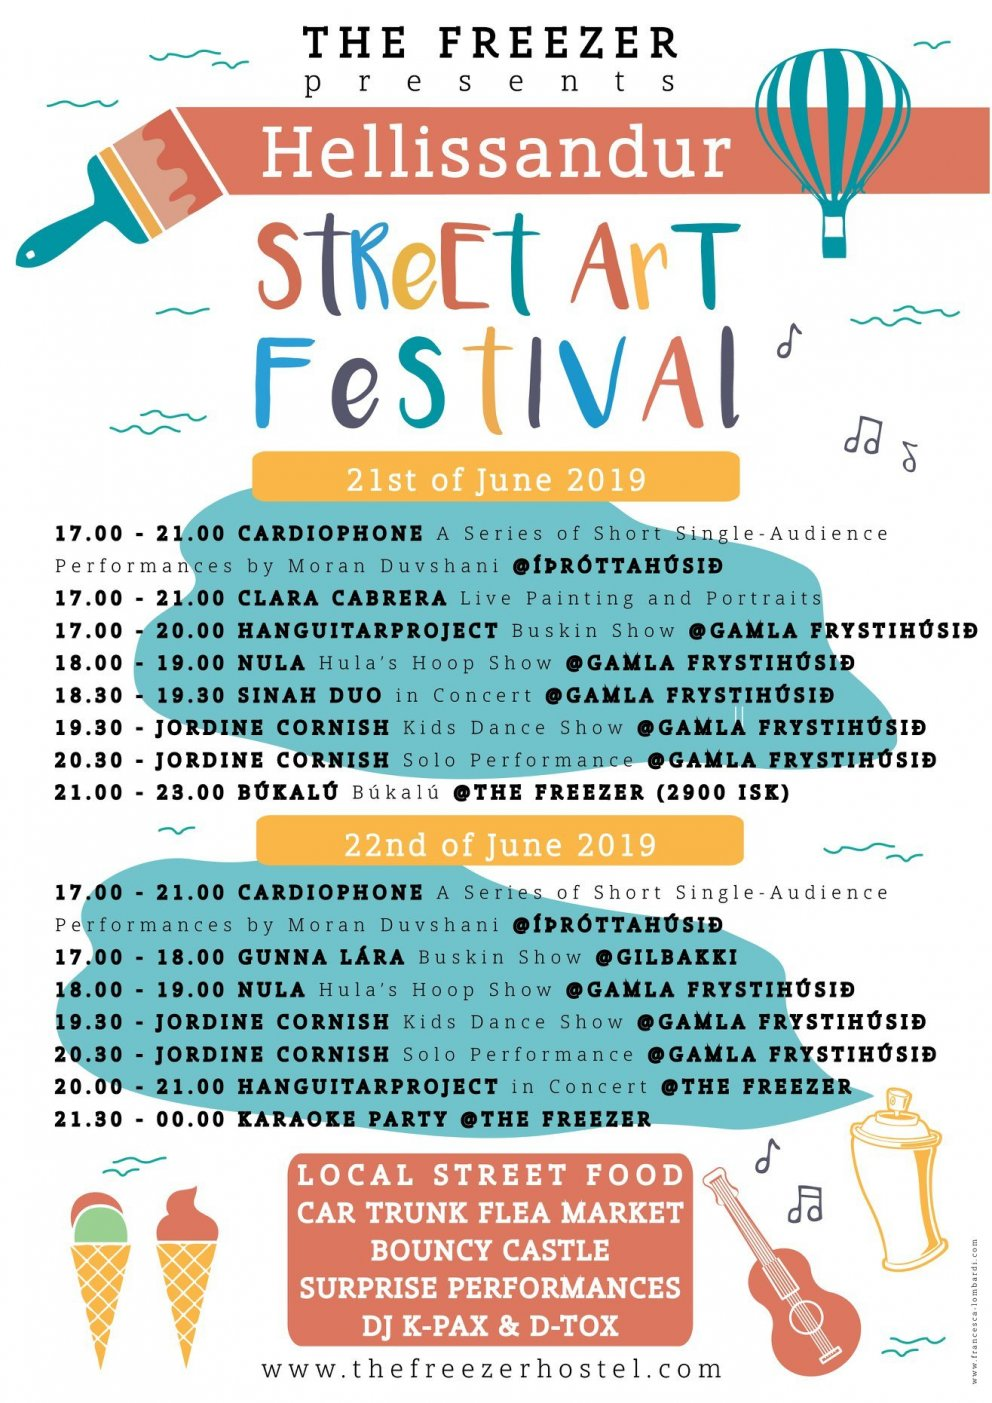 Street Art Festival in Hellissandur 21st - 22nd June